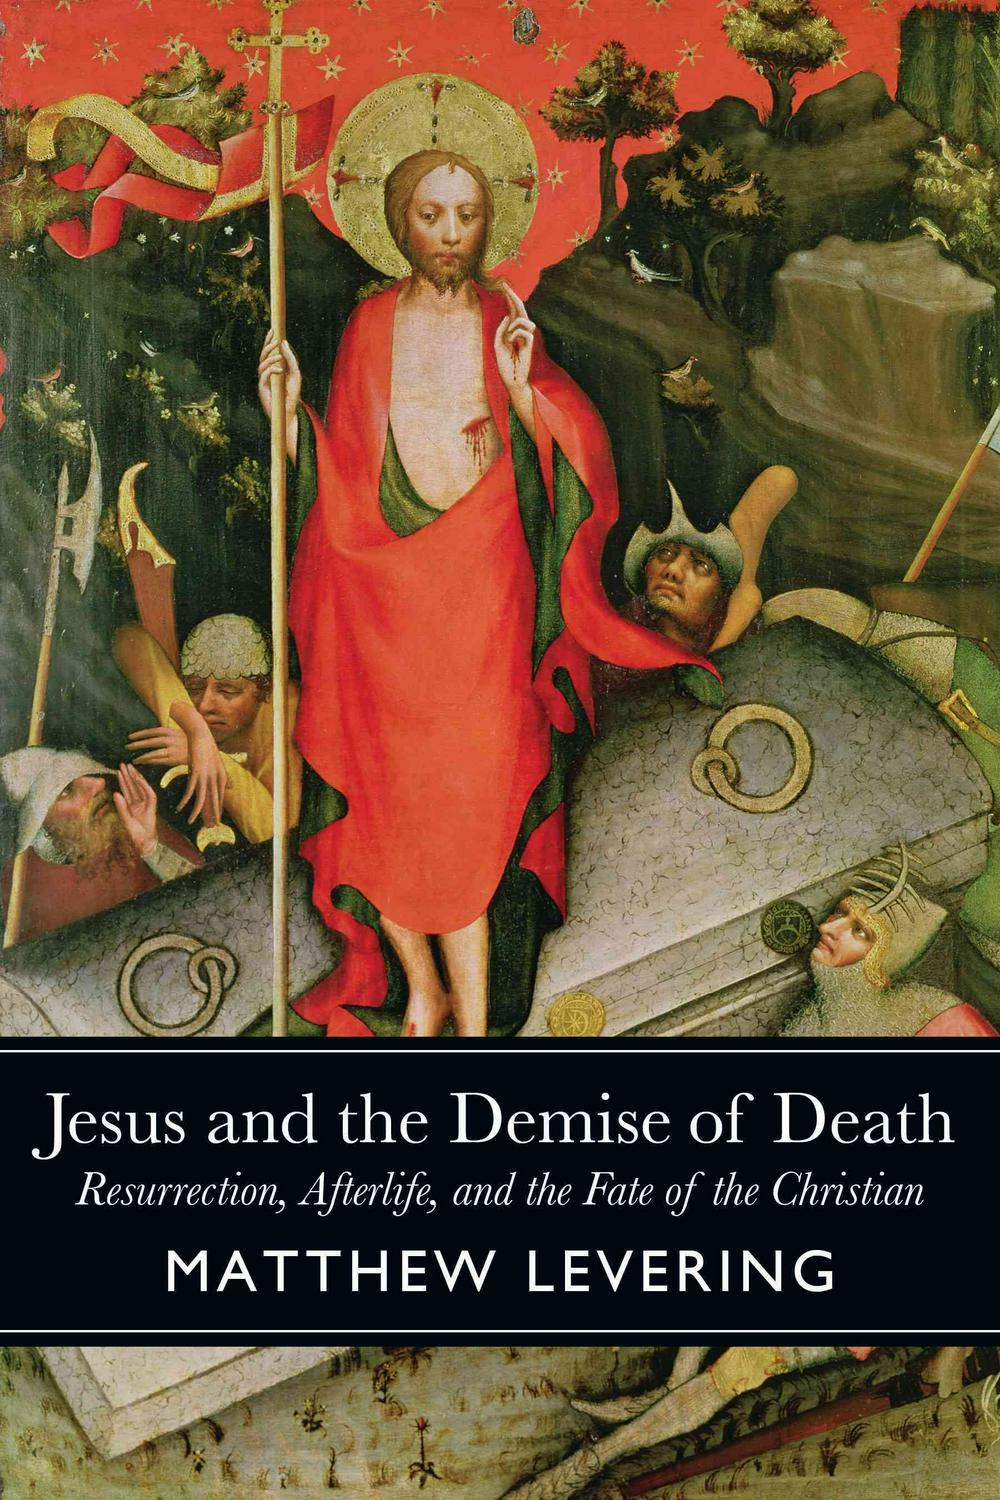 Jesus & the Demise of Death